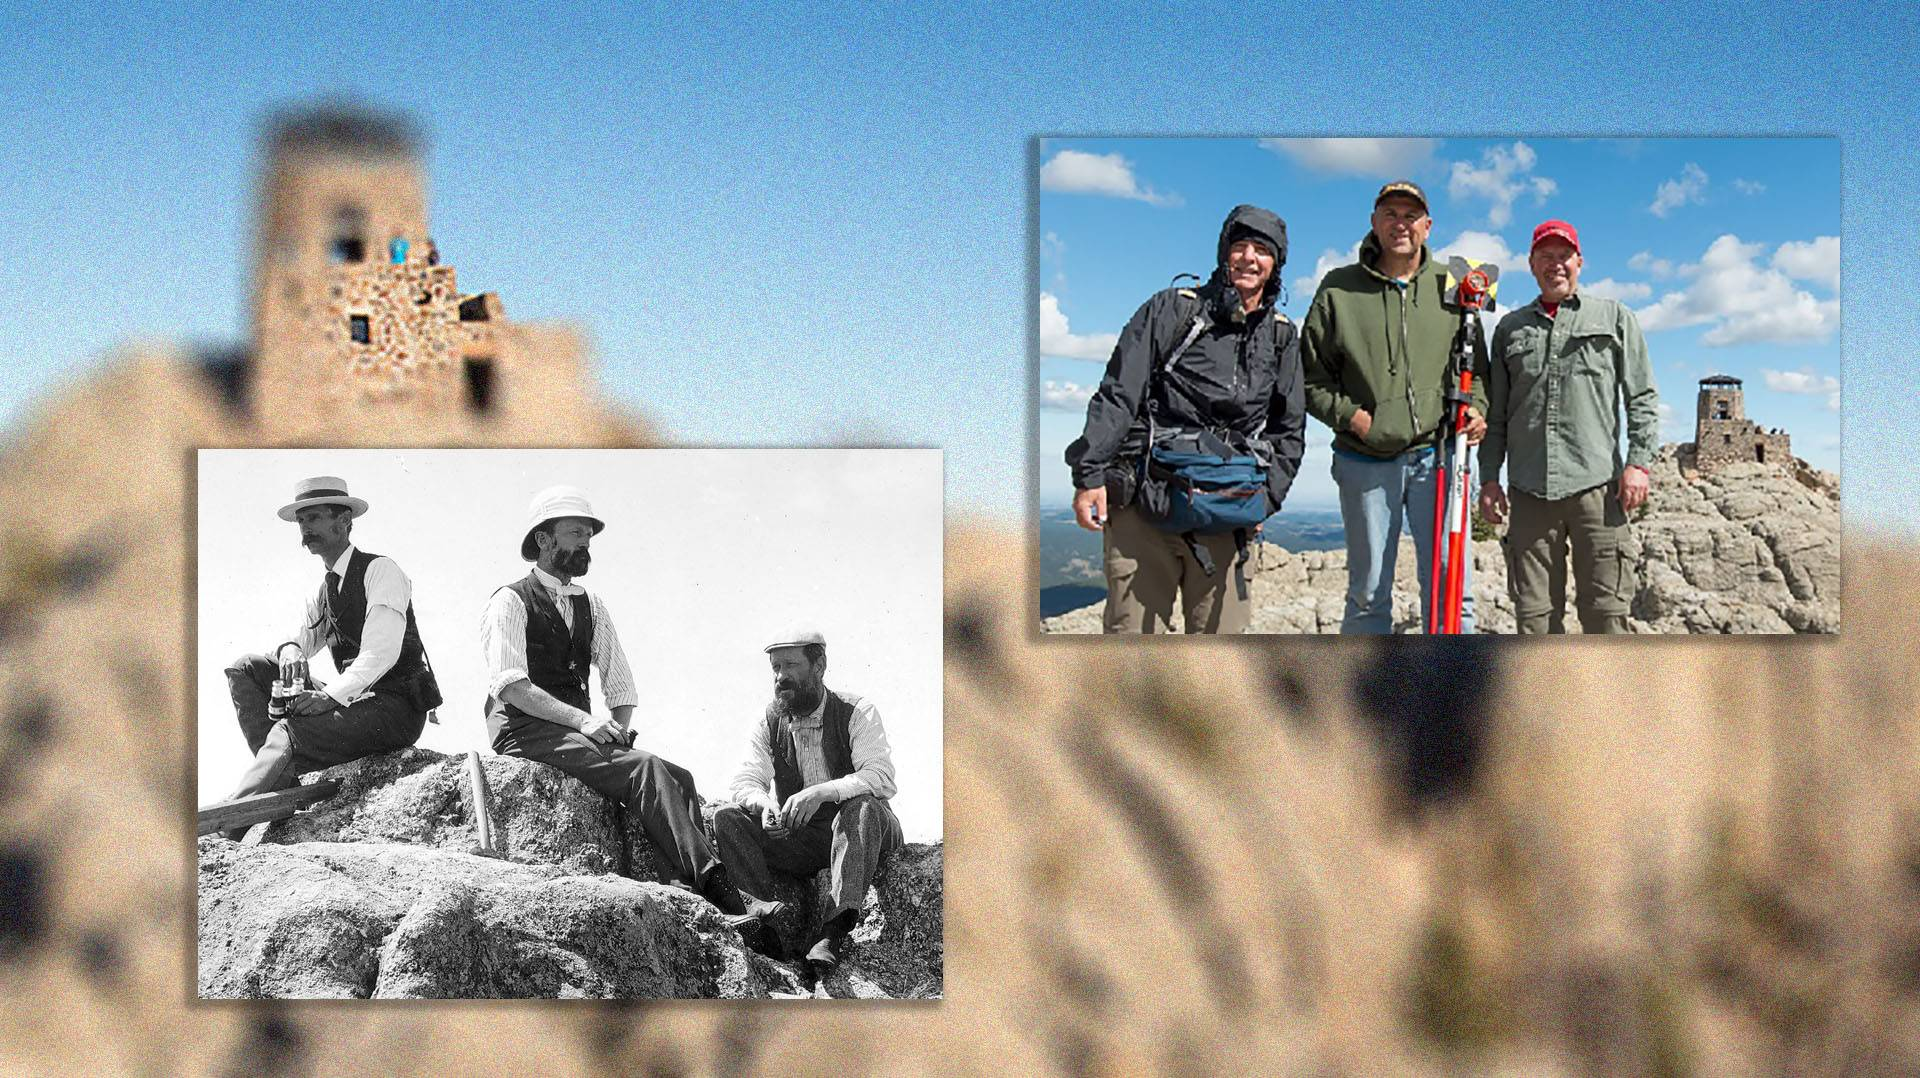 Surveyors in the Black Hills